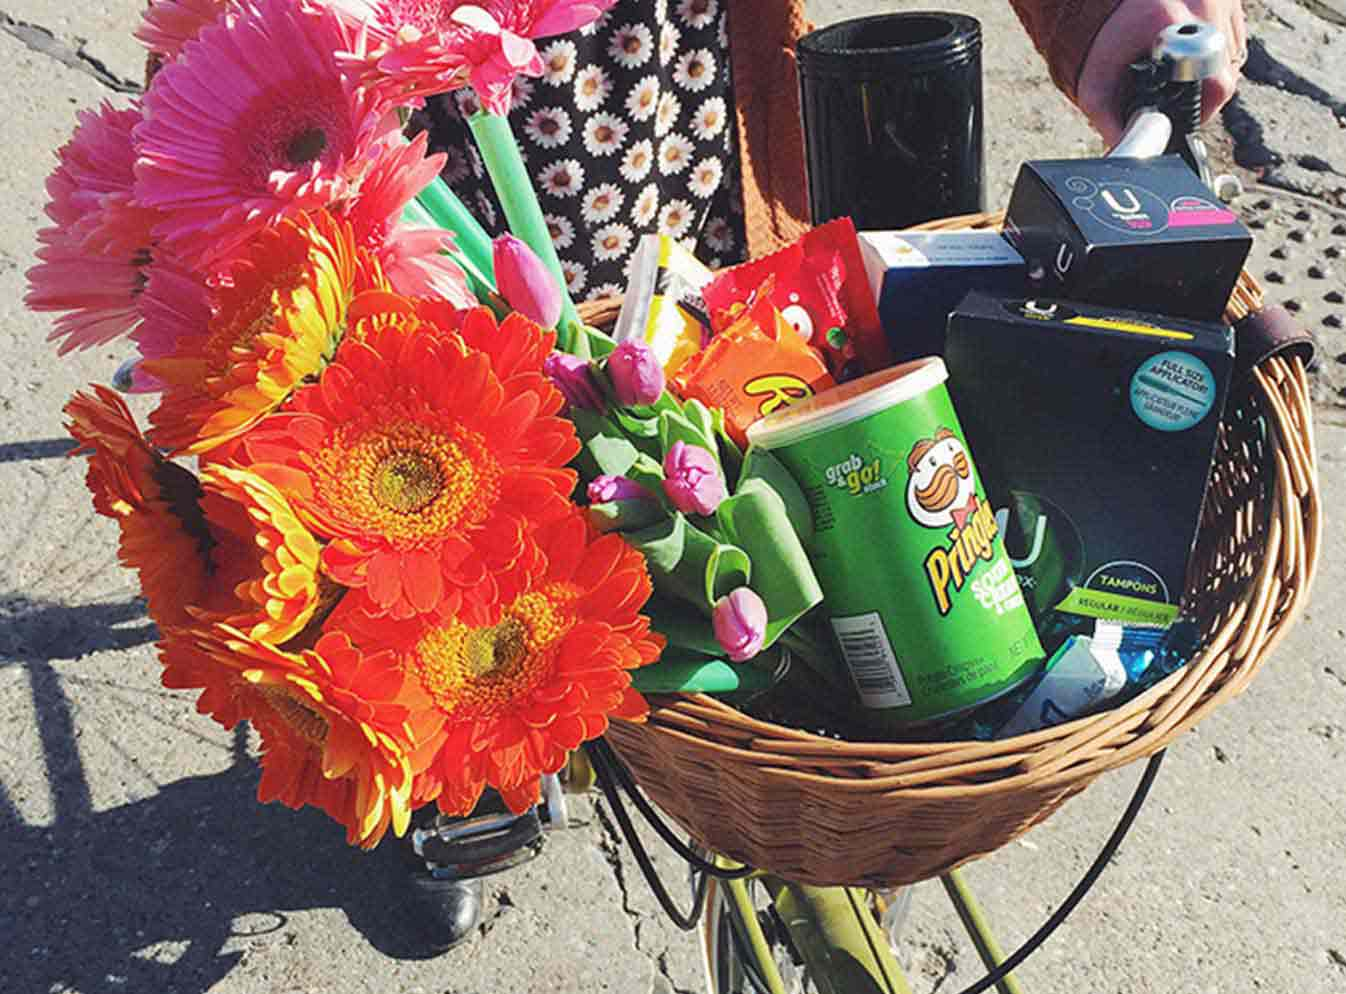 Bicycle basket of flowers, chips, U by Kotex